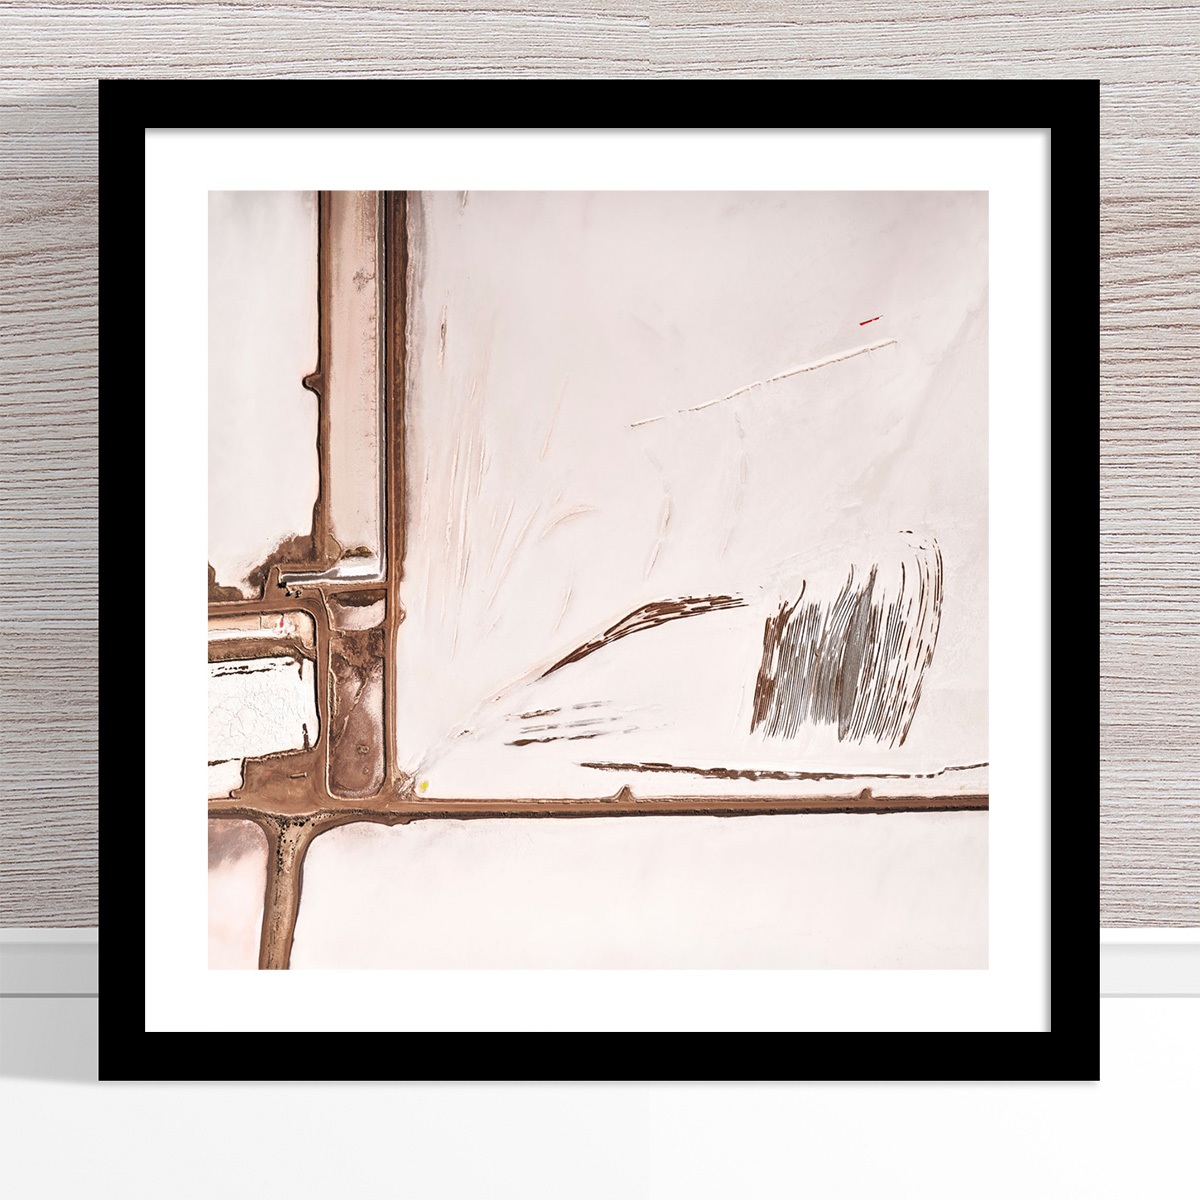 Chris Saunders - 'Aerial Salt 059' Black Frame